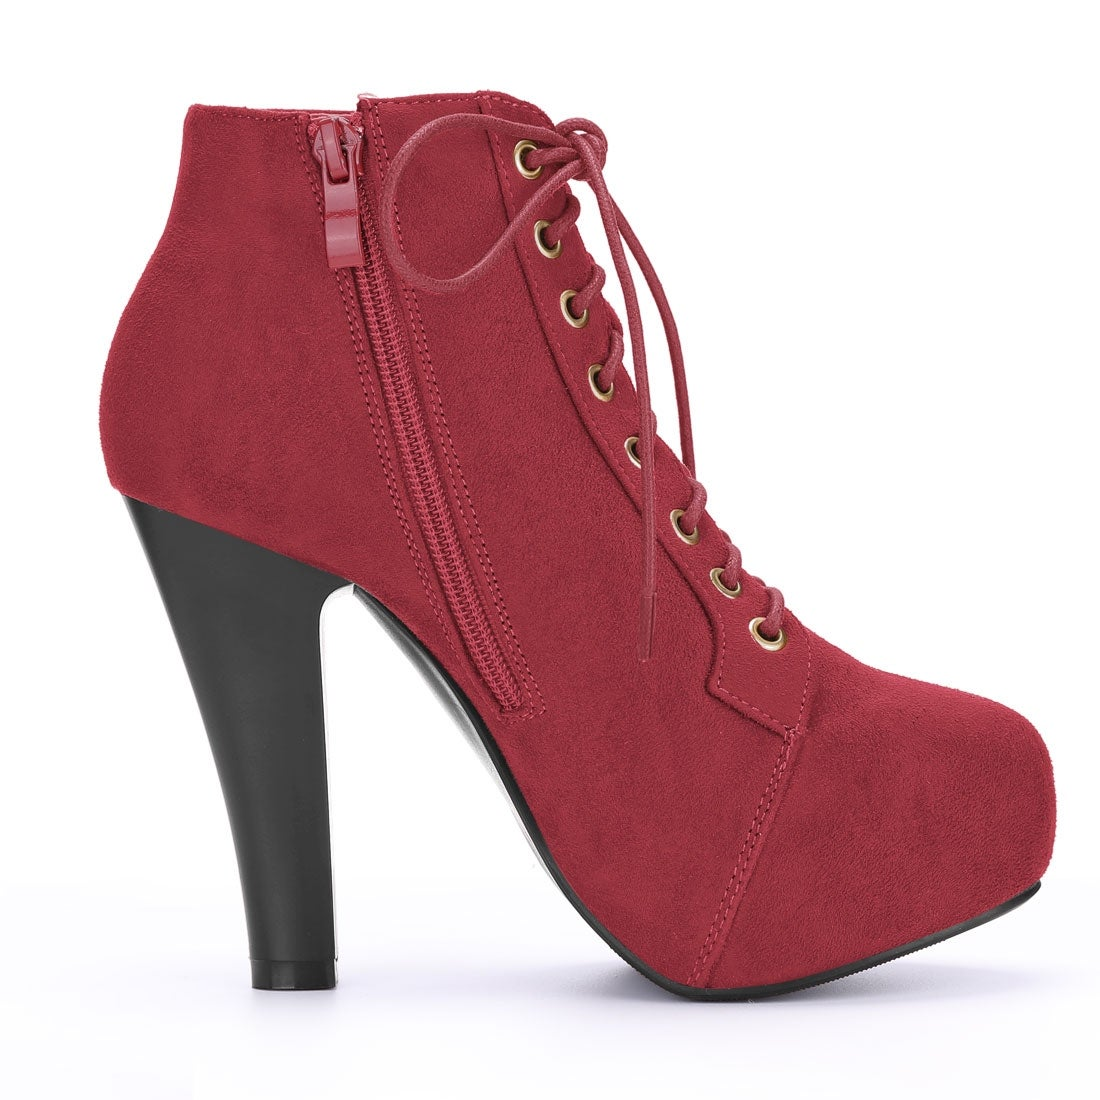 Details about  /Womens Low Heels Round Toe Ankle Riding Boots Lace Up Casual Fashion Shoes C908